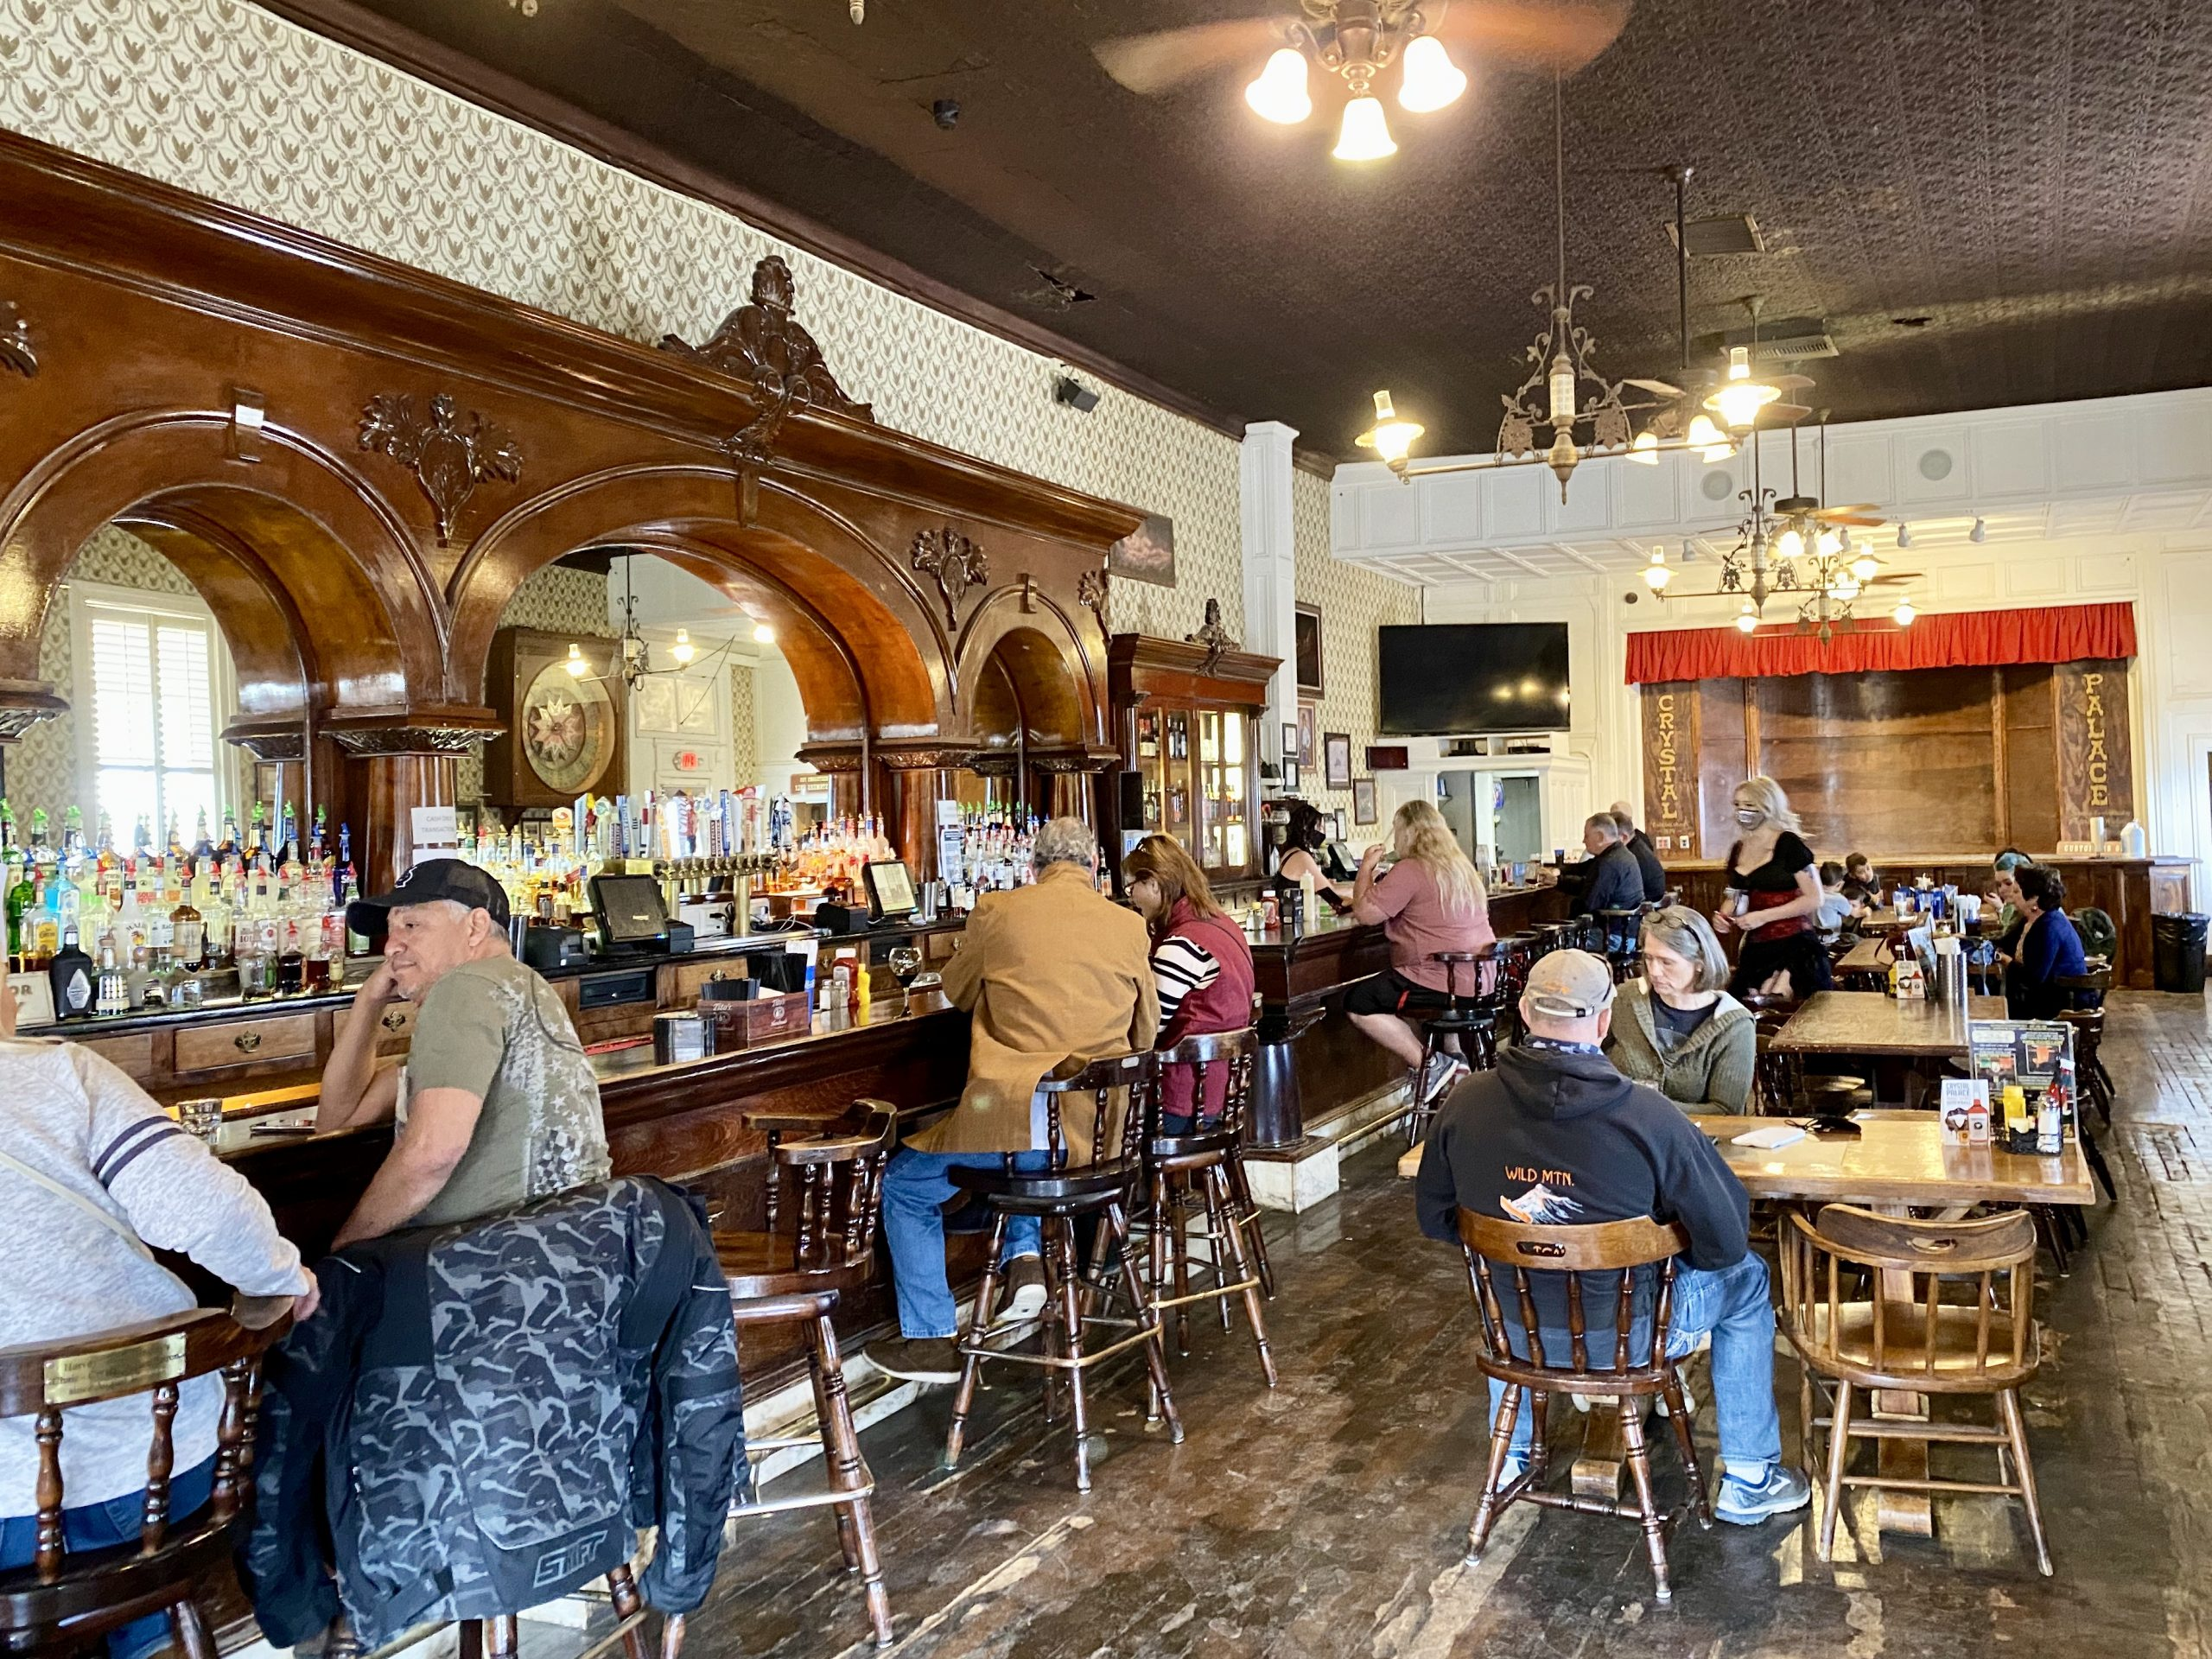 The Crystal Palace Saloon in Tombstone, Arizona has historic bar and stage